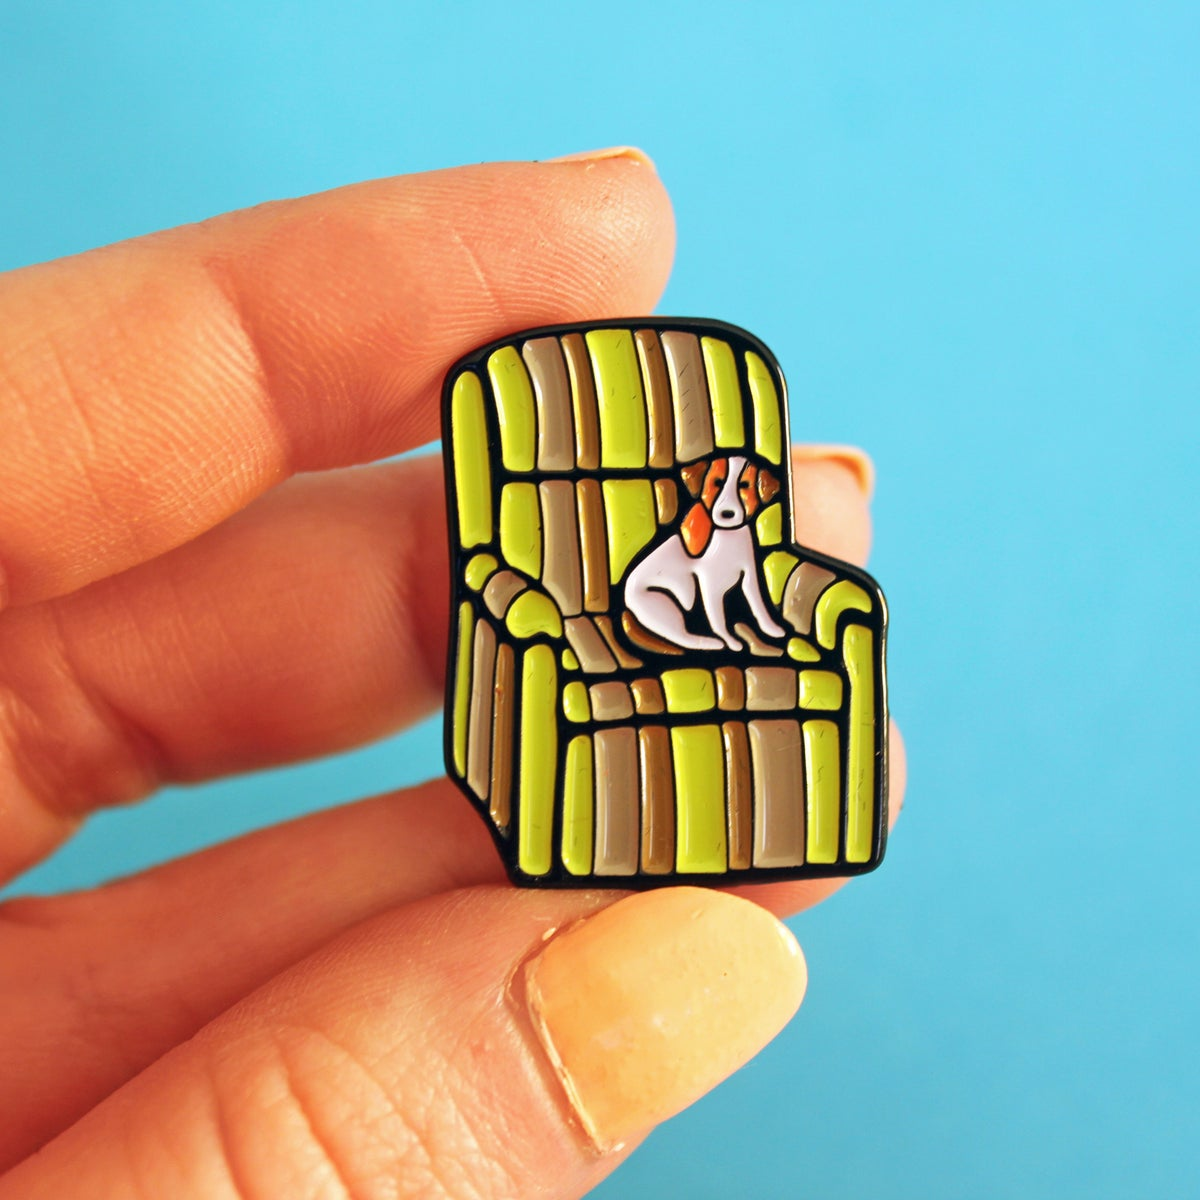 Image of Marty's Ugly chair & Eddie the dog, Frasier - inspired enamel pin - badge - lapel pin